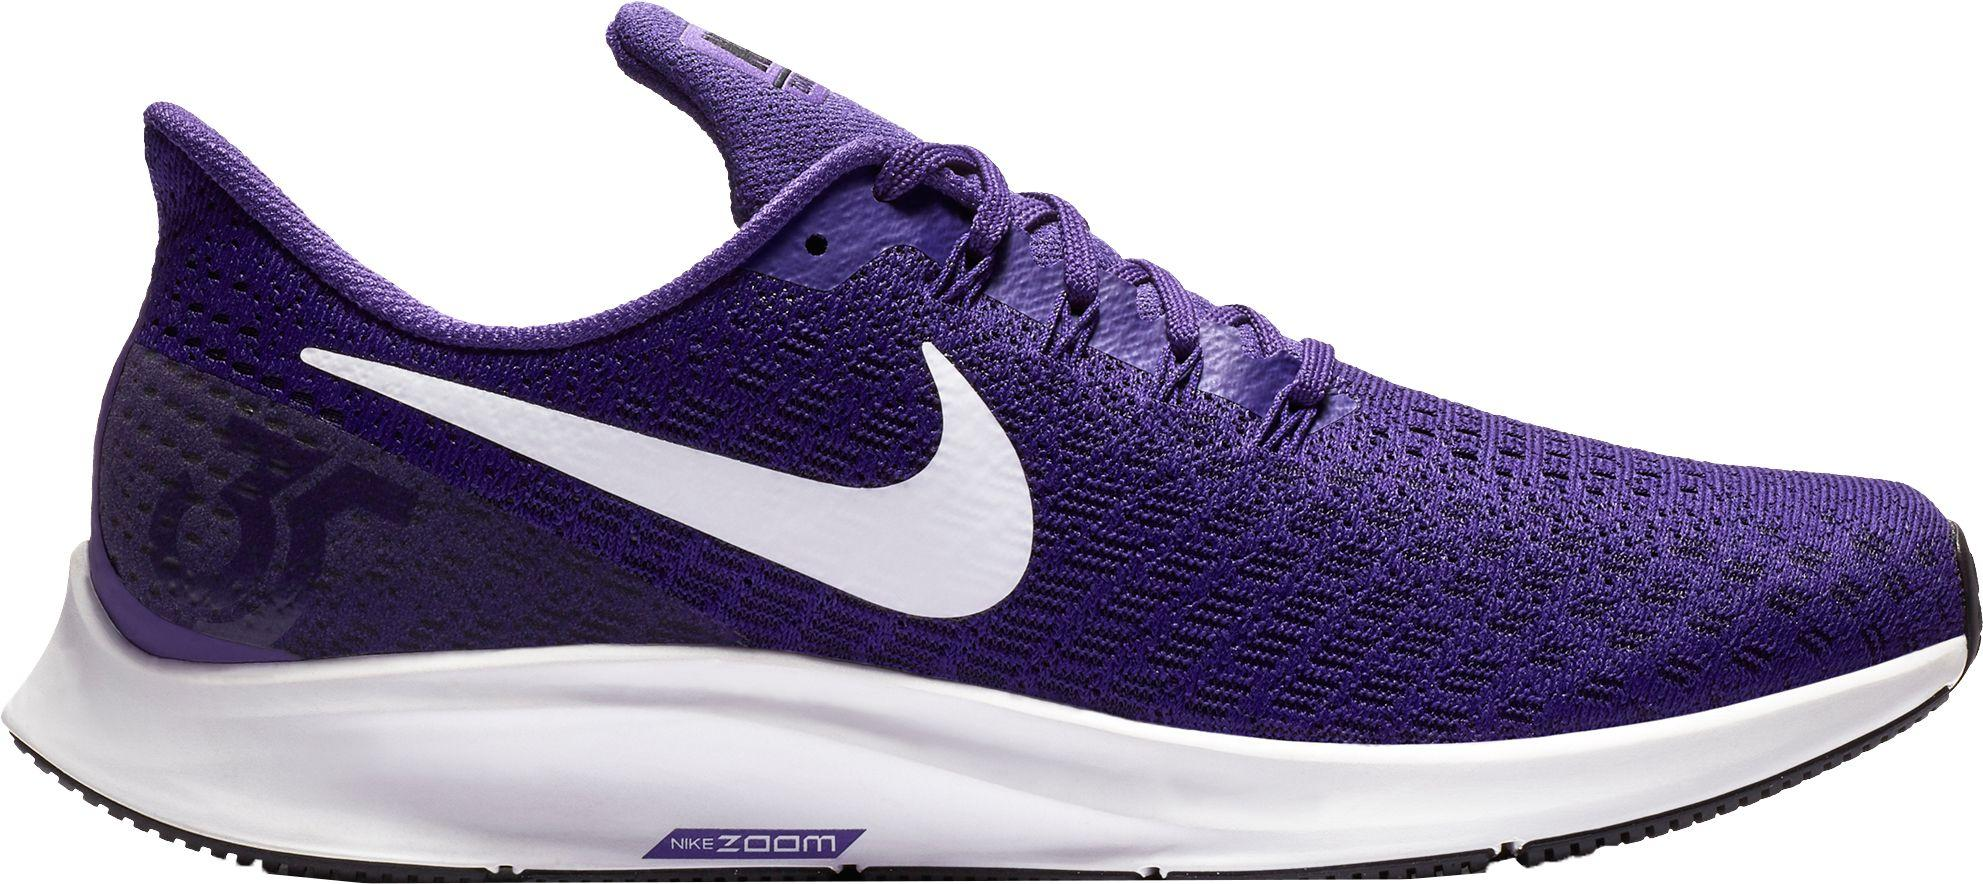 8175535e966f7 Lyst - Nike Air Zoom Pegasus 35 Running Shoes in Purple for Men